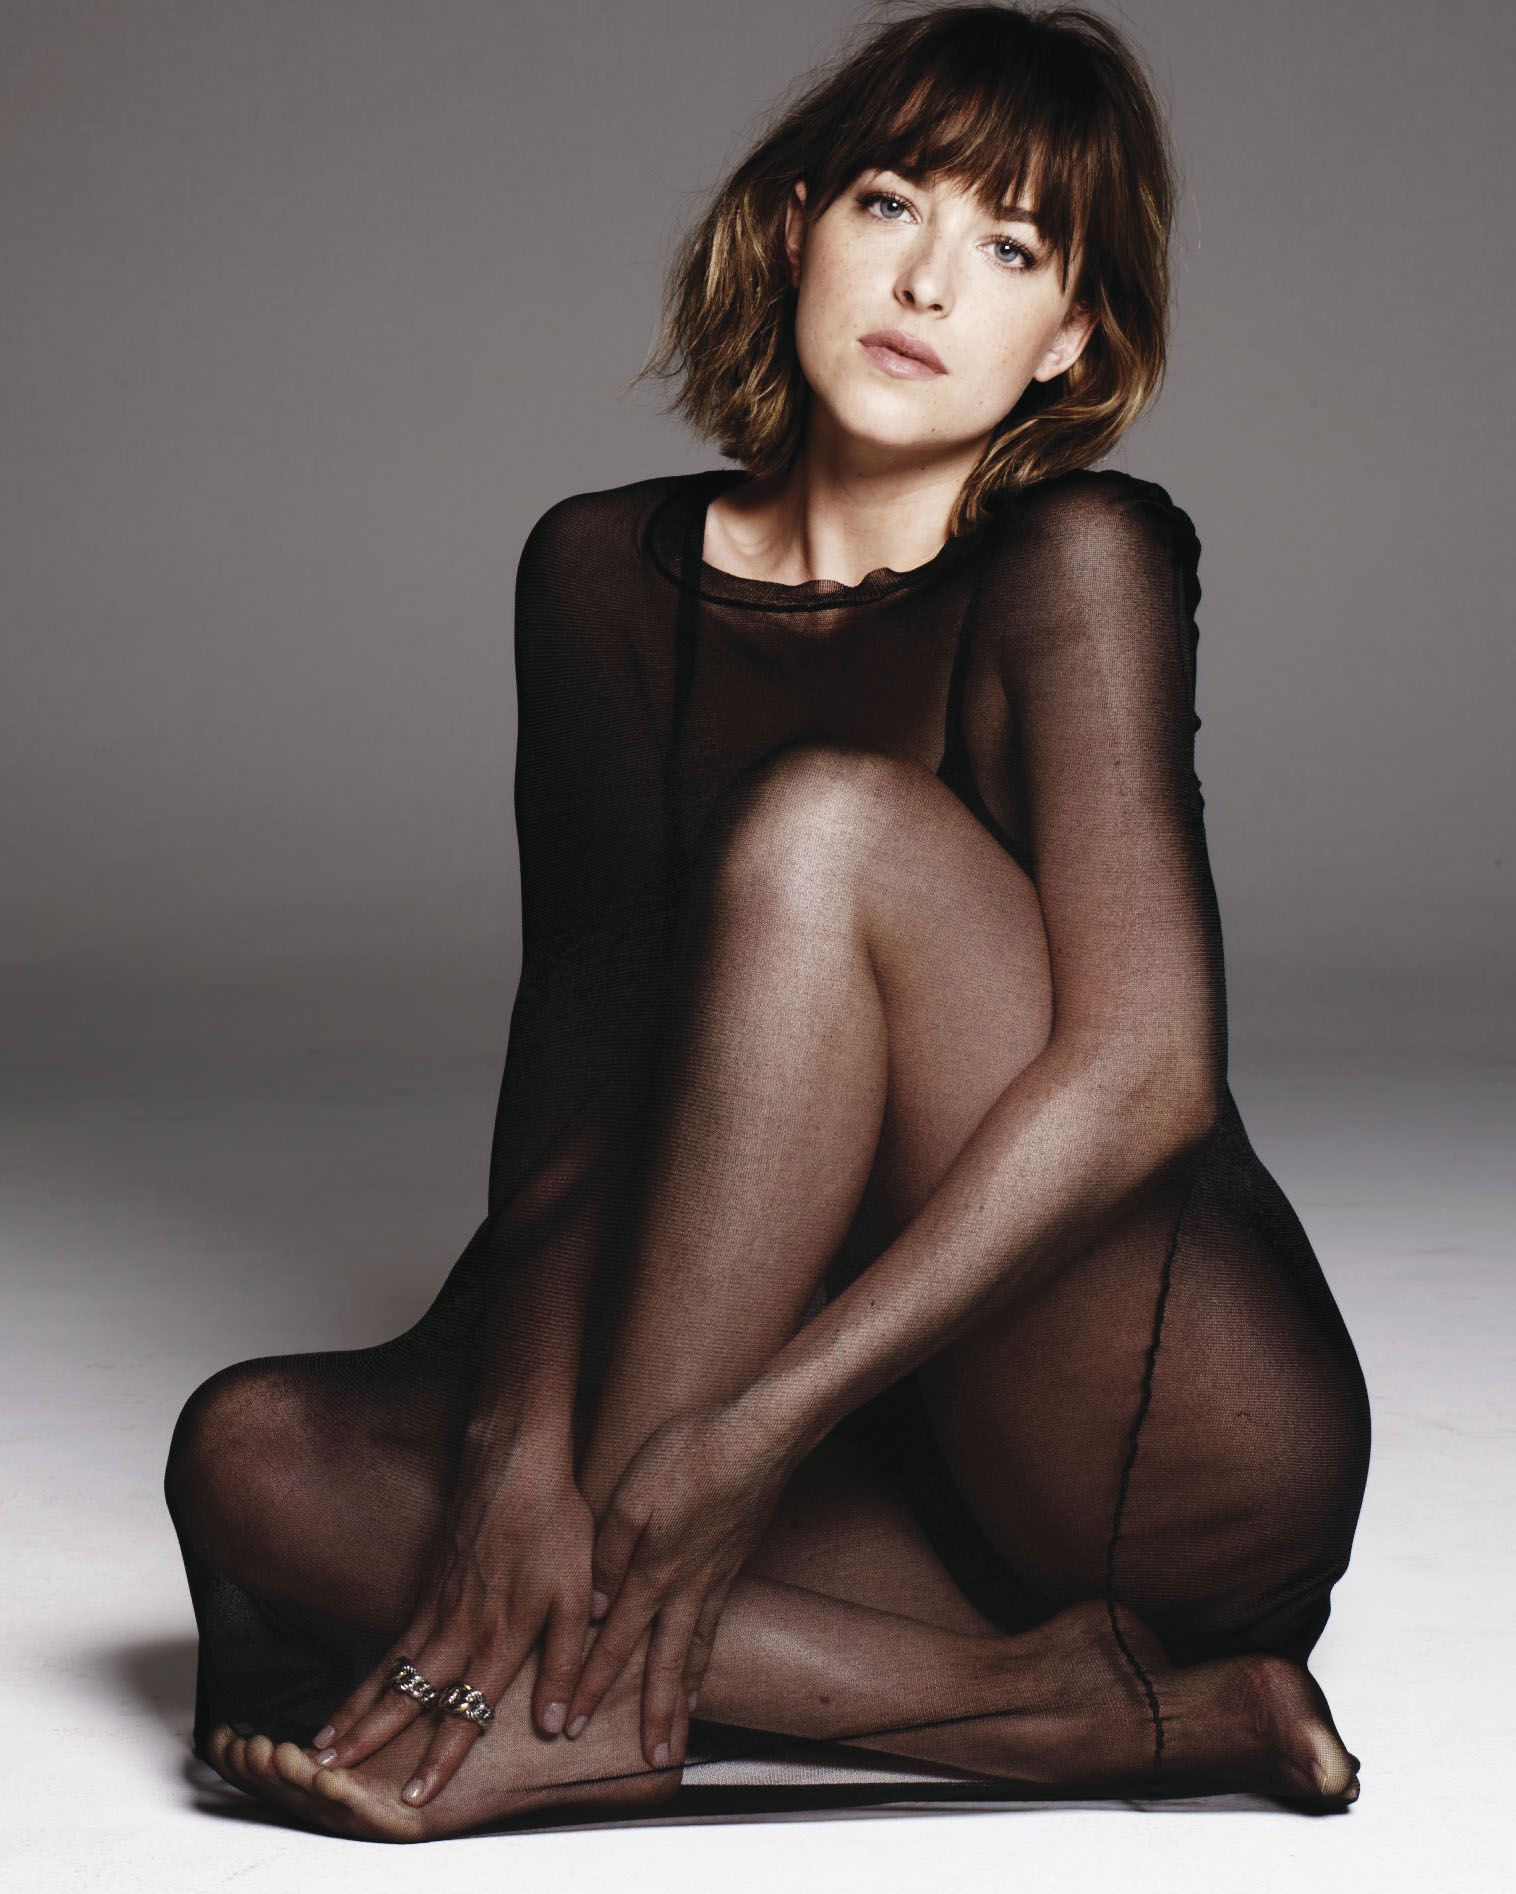 dakota johnson stunning bare feet